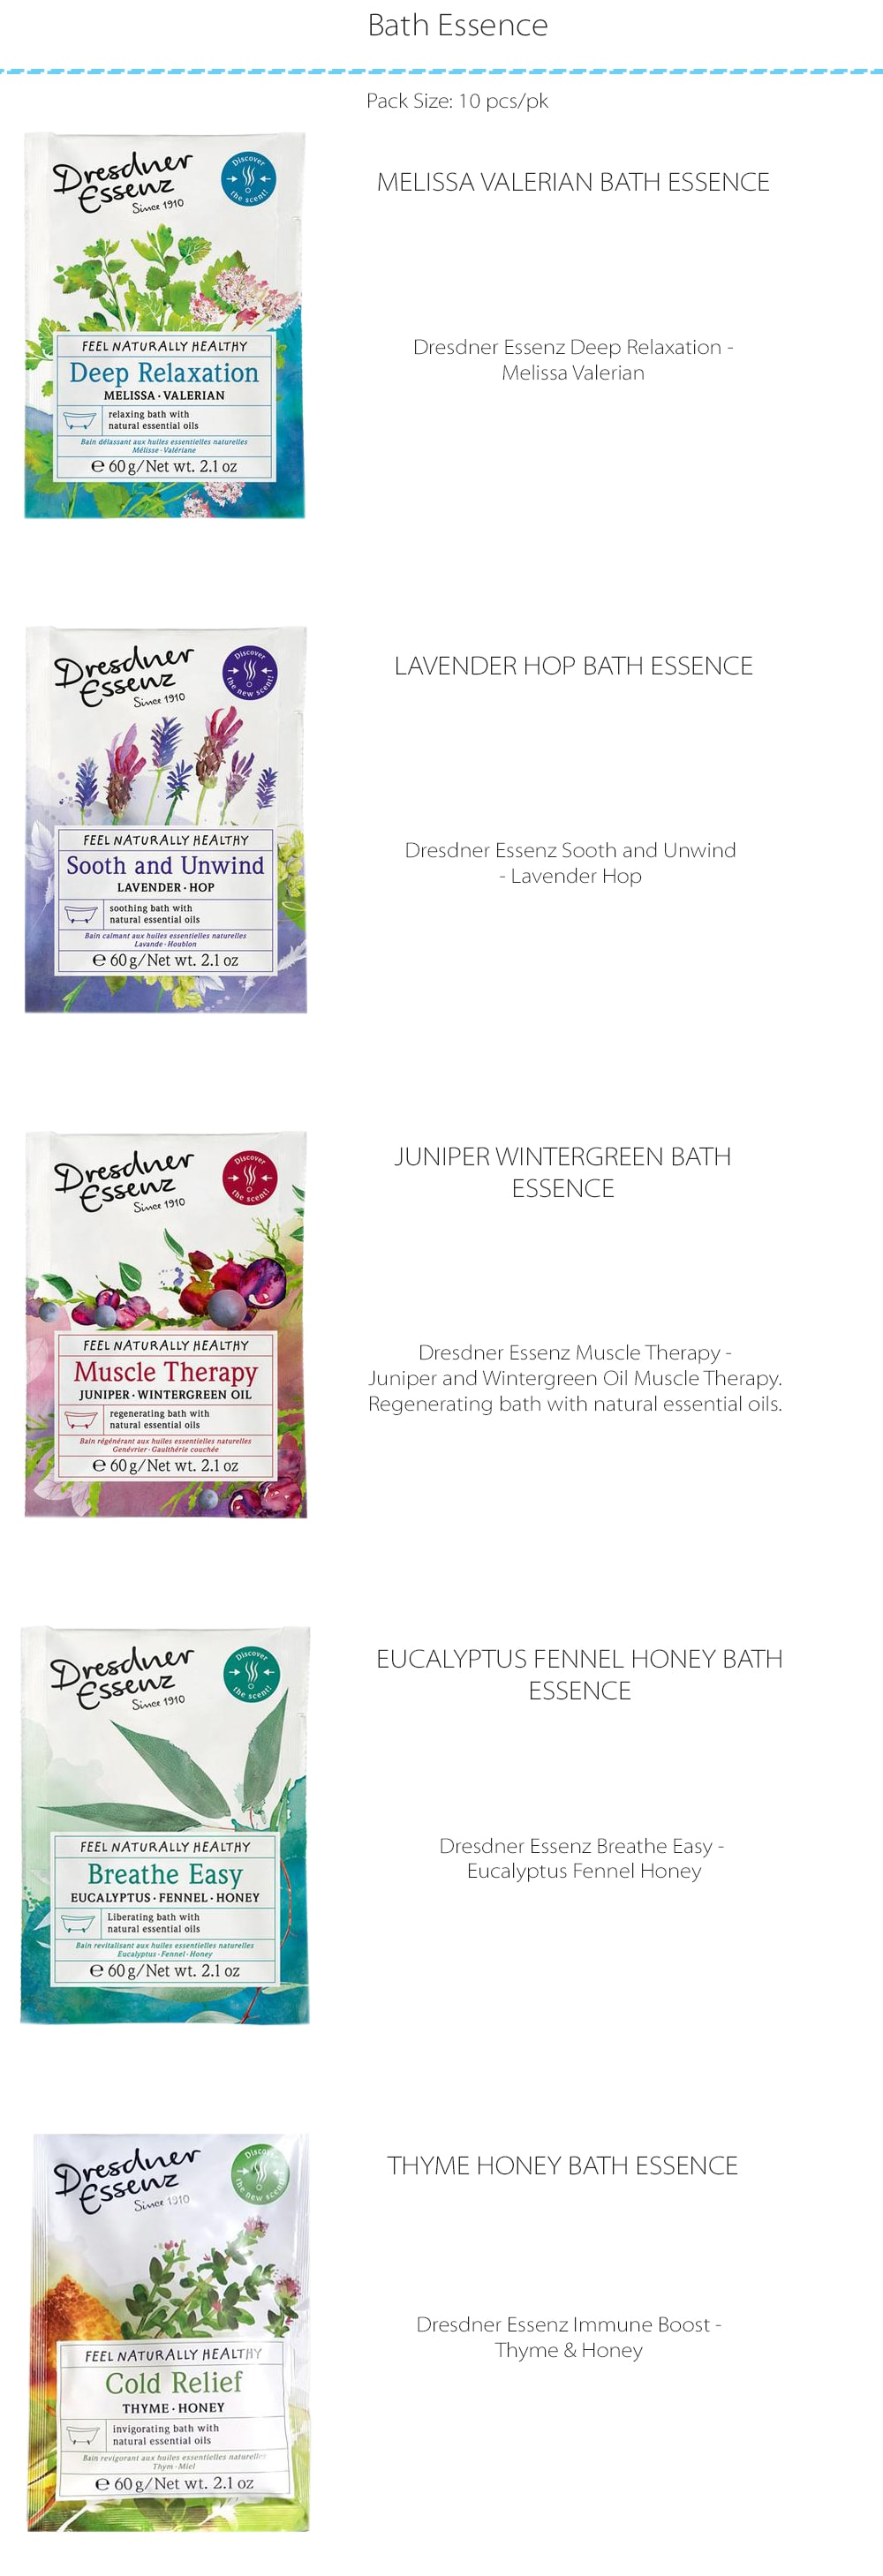 Dresdner's Wellness Bath Essence  From European Soap